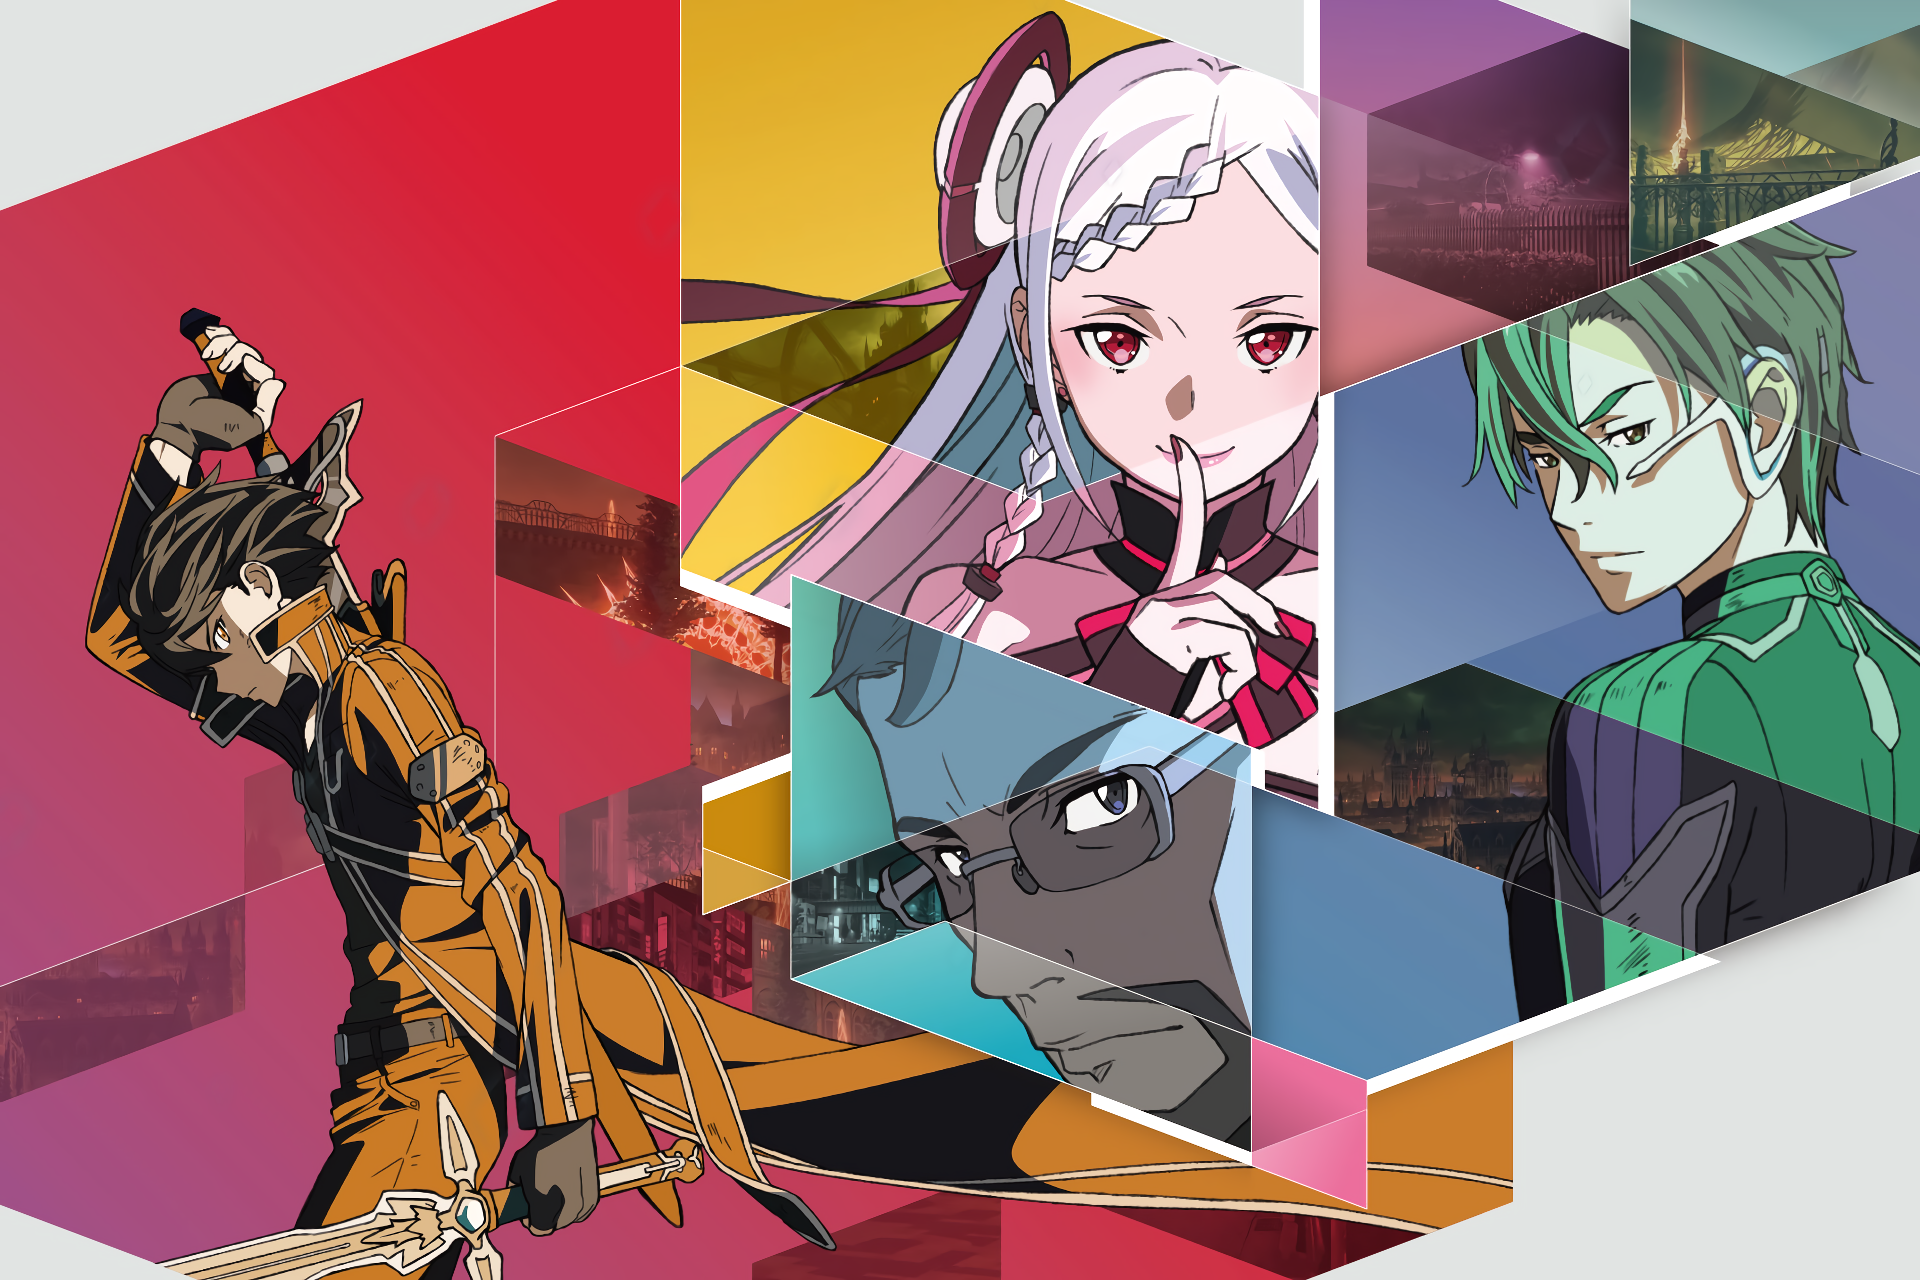 Anime - Sword Art Online Movie: Ordinal Scale  Sword Art Online Ordinal Scale Sword Art Online Eiji (Sword Art Online) Yuna (Sword Art Online) Kazuto Kirigaya Kirito (Sword Art Online) Shigemura Tetsuhiro Wallpaper